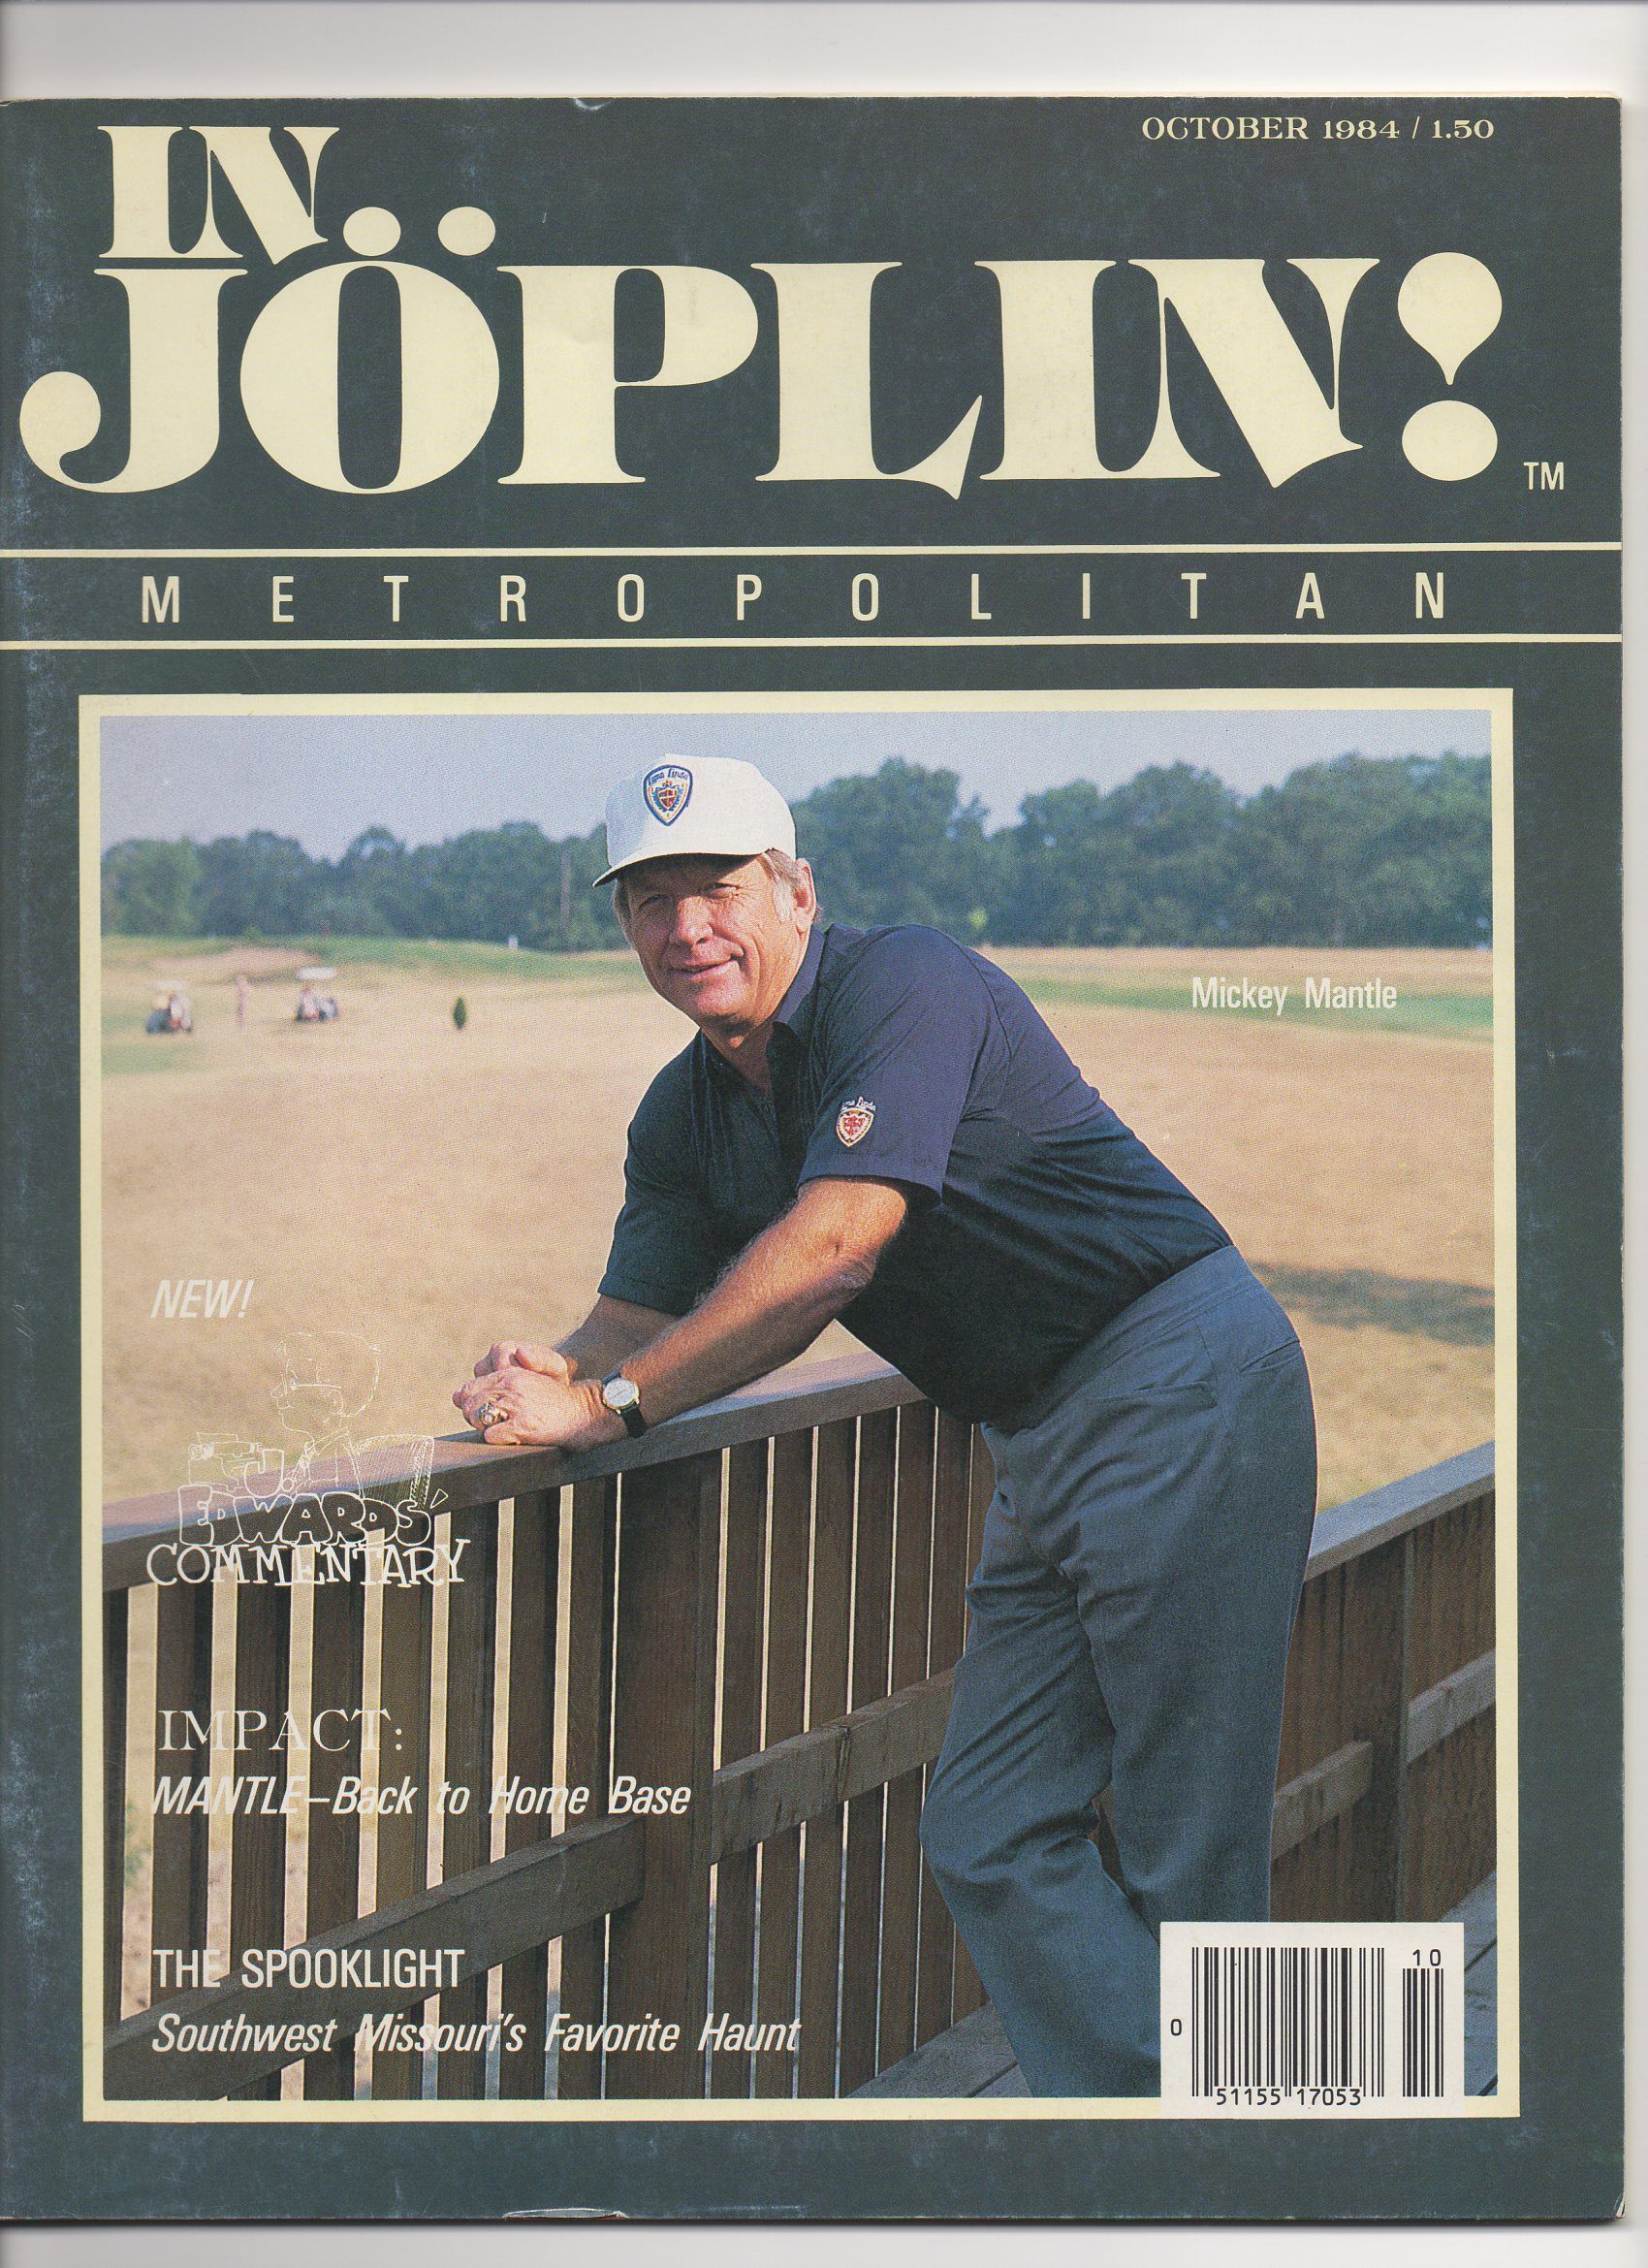 1984 In Joplin magazine, october issue